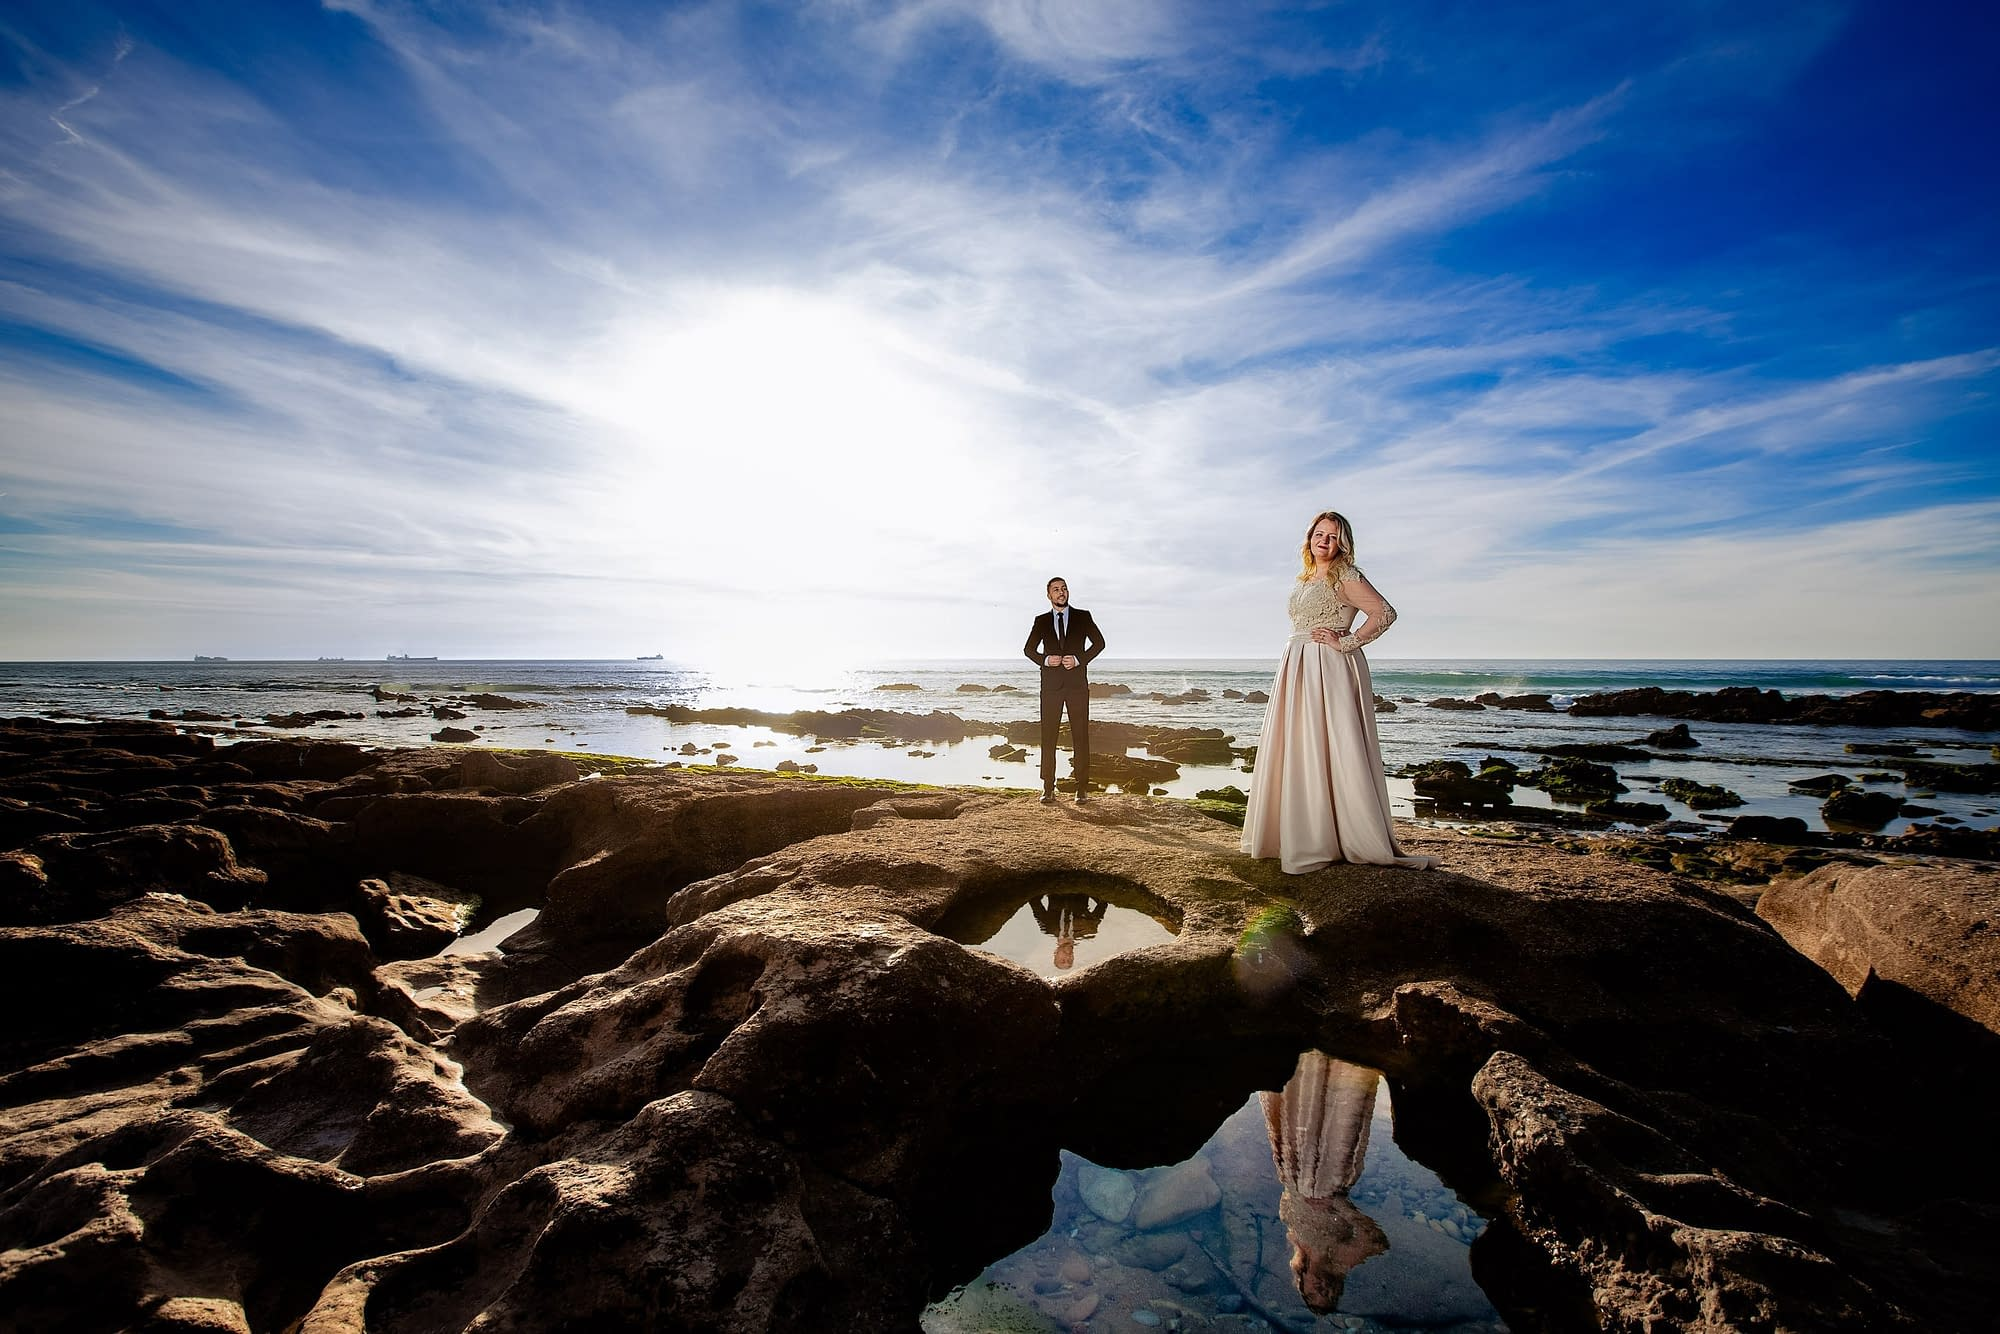 Post wedding photoshoot on Agadir's beach.